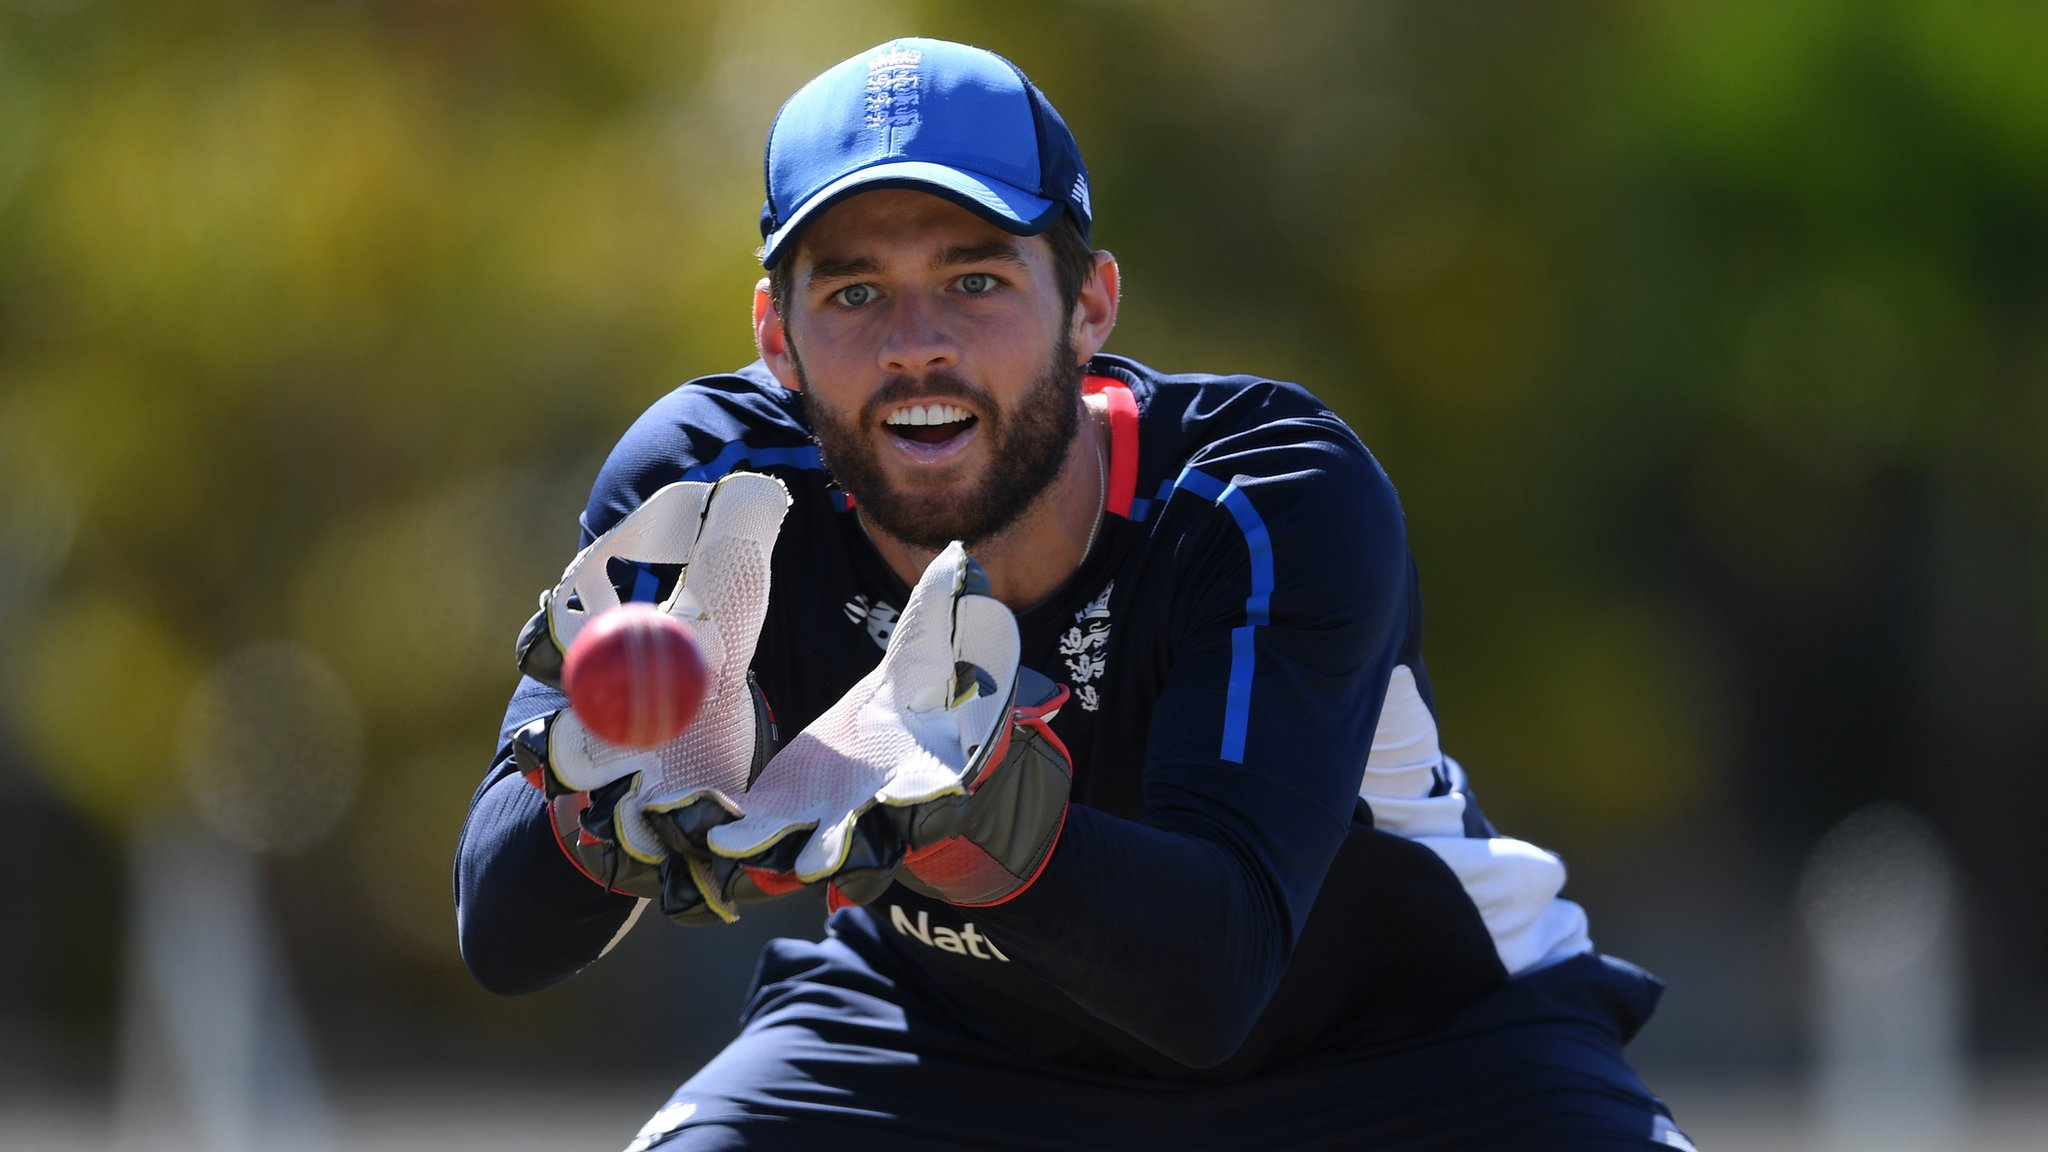 Wicketkeeper Foakes 'has changed England dynamic', says ex-captain Cook